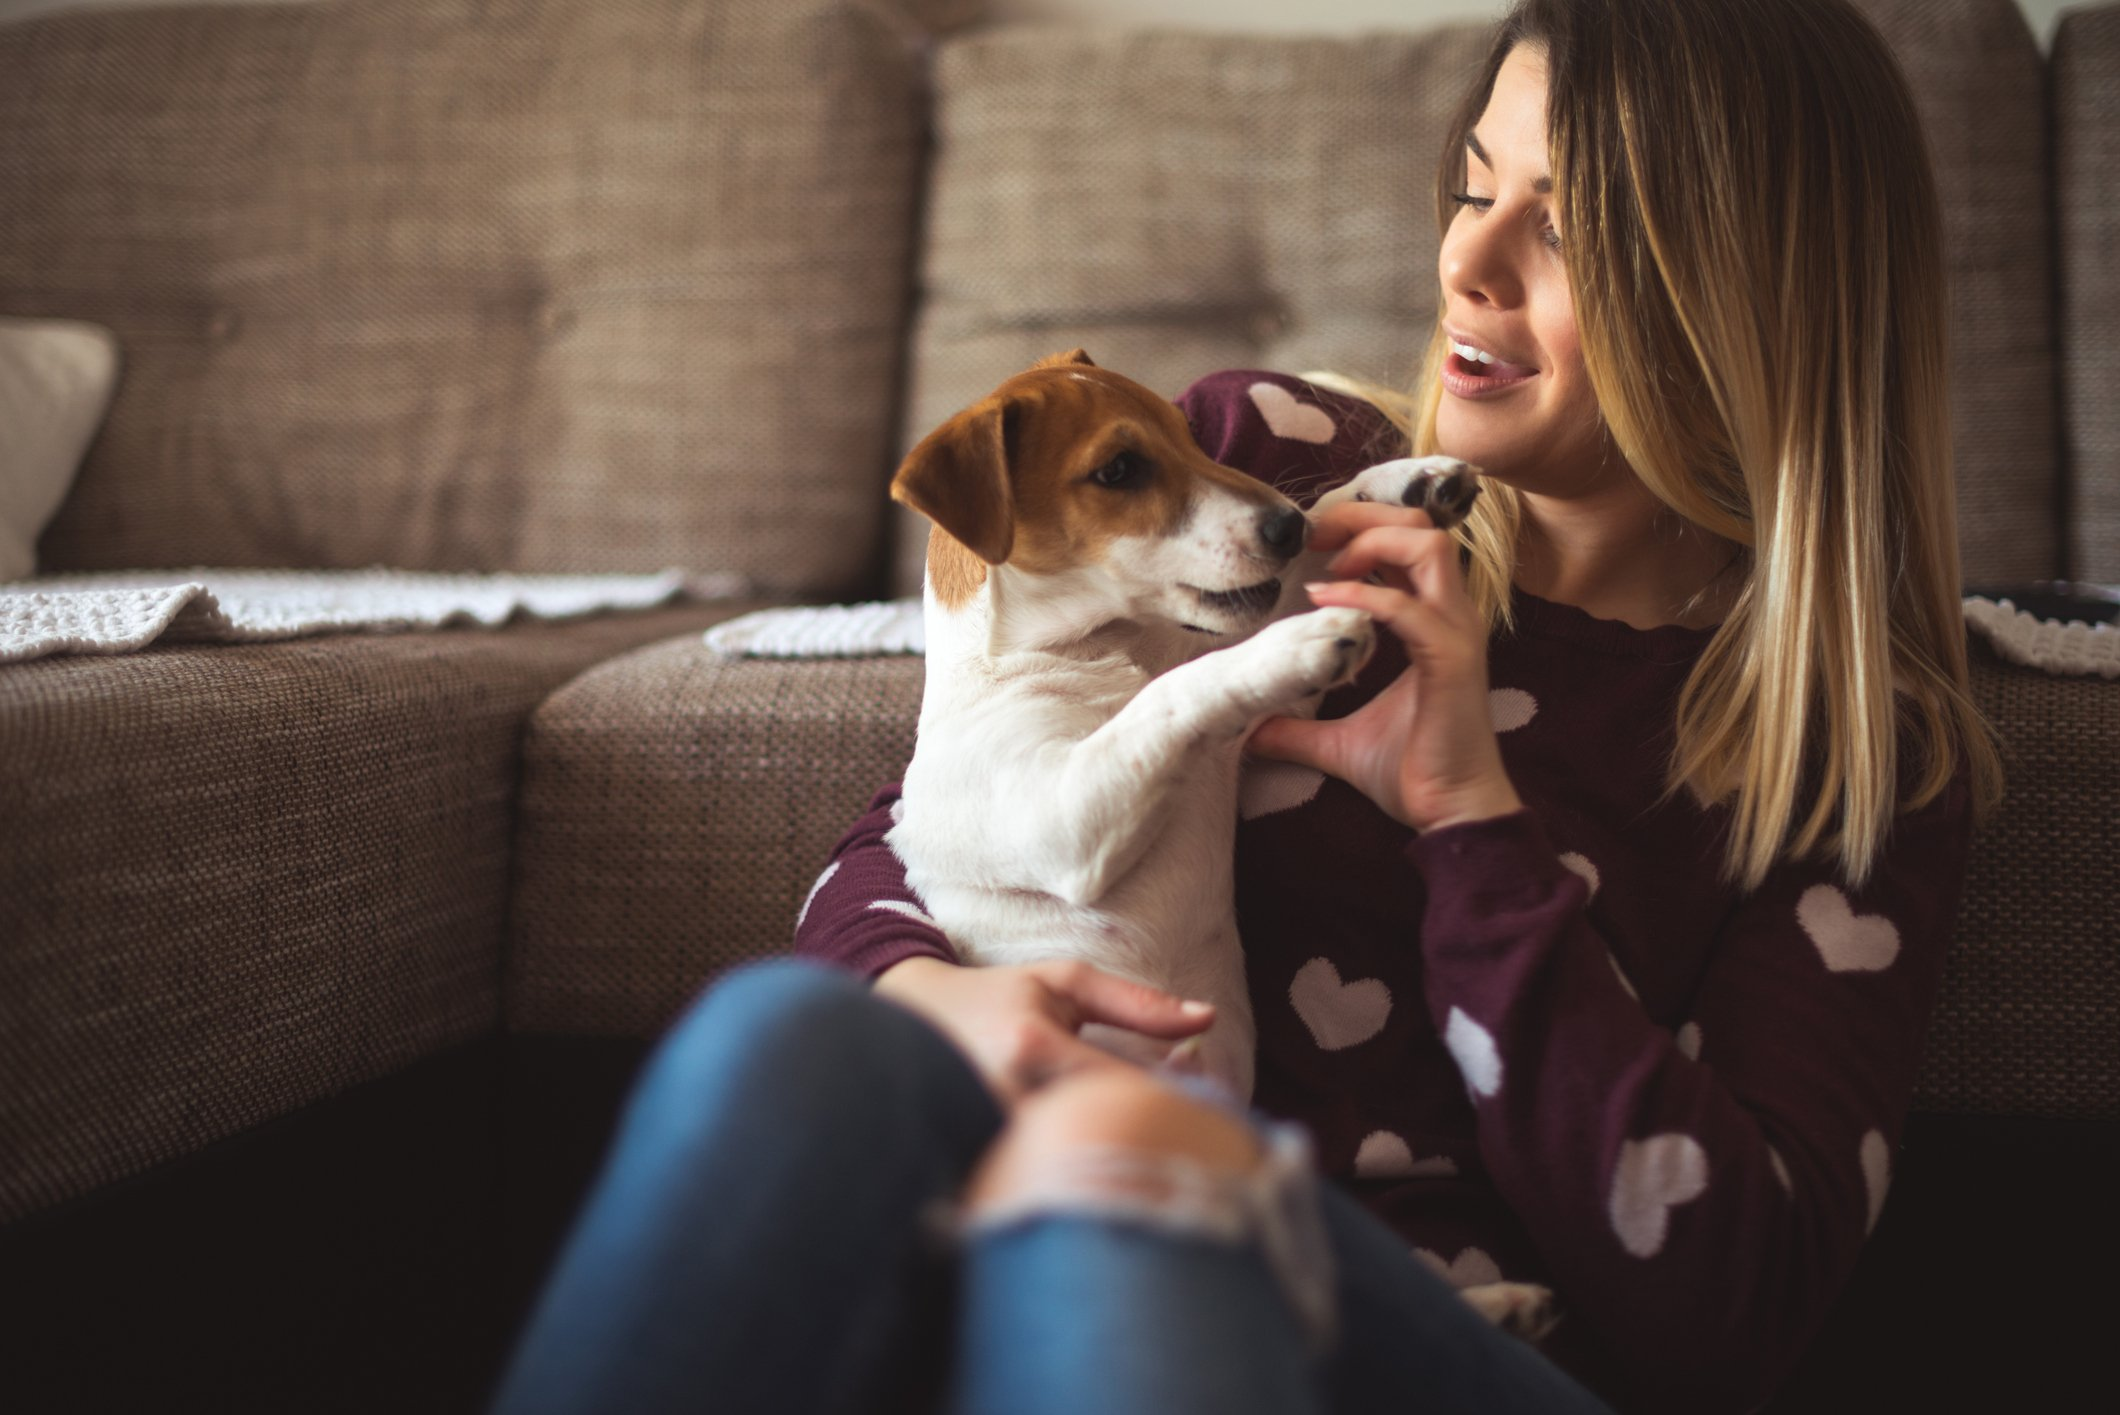 Beautiful girl playing with her dog at home.